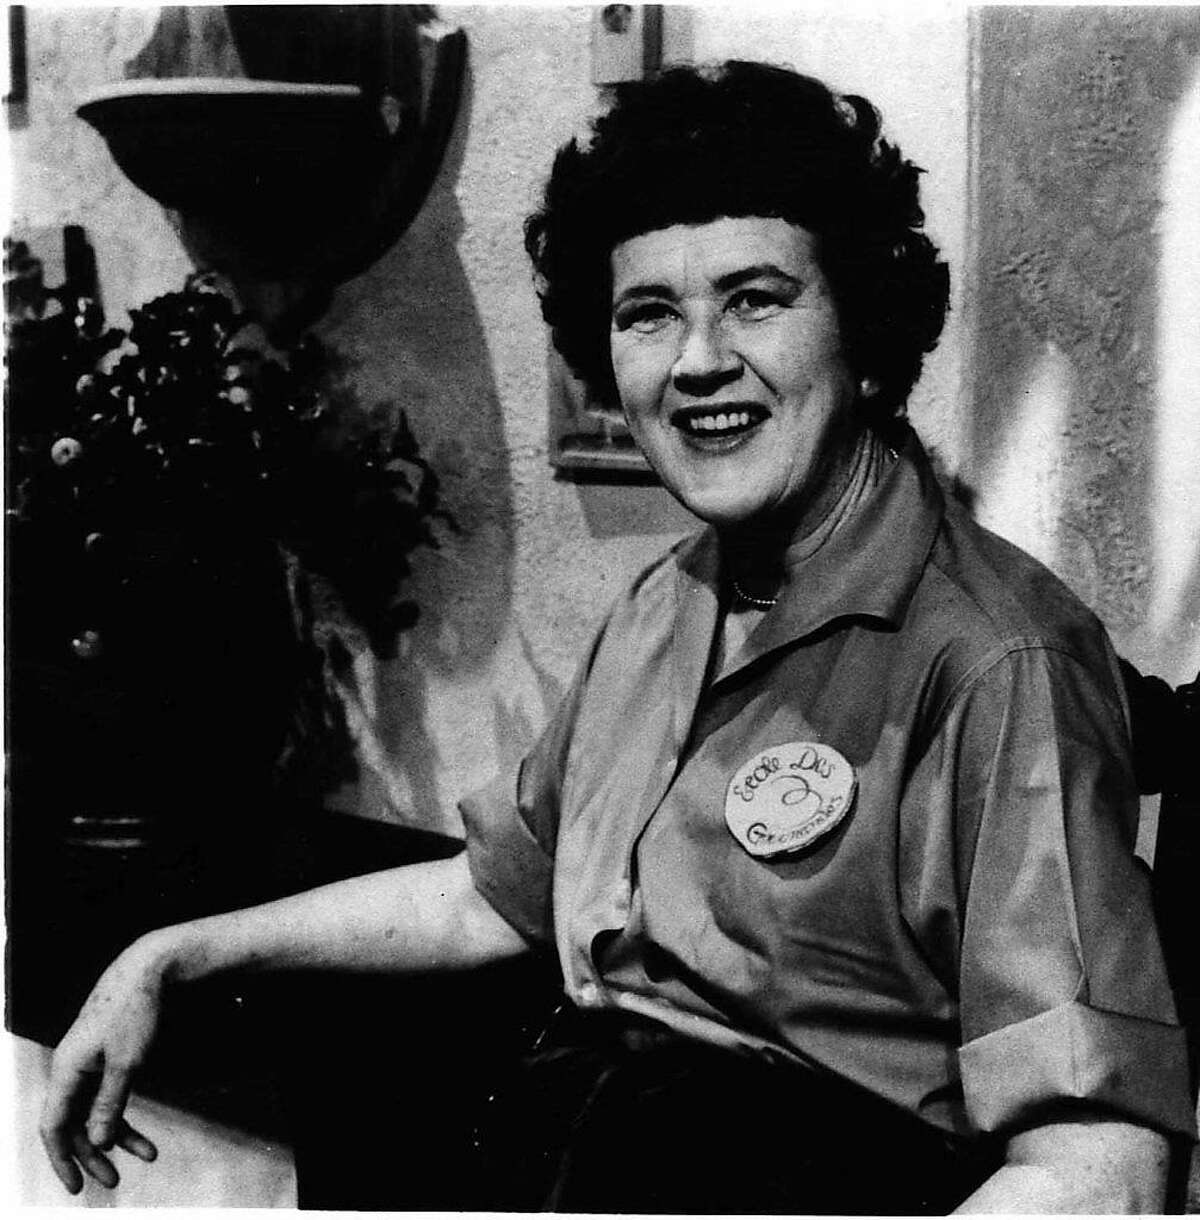 """This 1967 file photo shows Julia Child explaining """"with a little practice"""" you can do everything with the flare of a gourmet. More so than the tools and techniques she popularized, Child's most lasting legacy may be her spirit and sense of humor. That was the conclusion of several chefs and food magazine editors asked to describe Child's memorable contributions to American home cooking as a new movie about her life is about to open. (AP Photo,File)"""